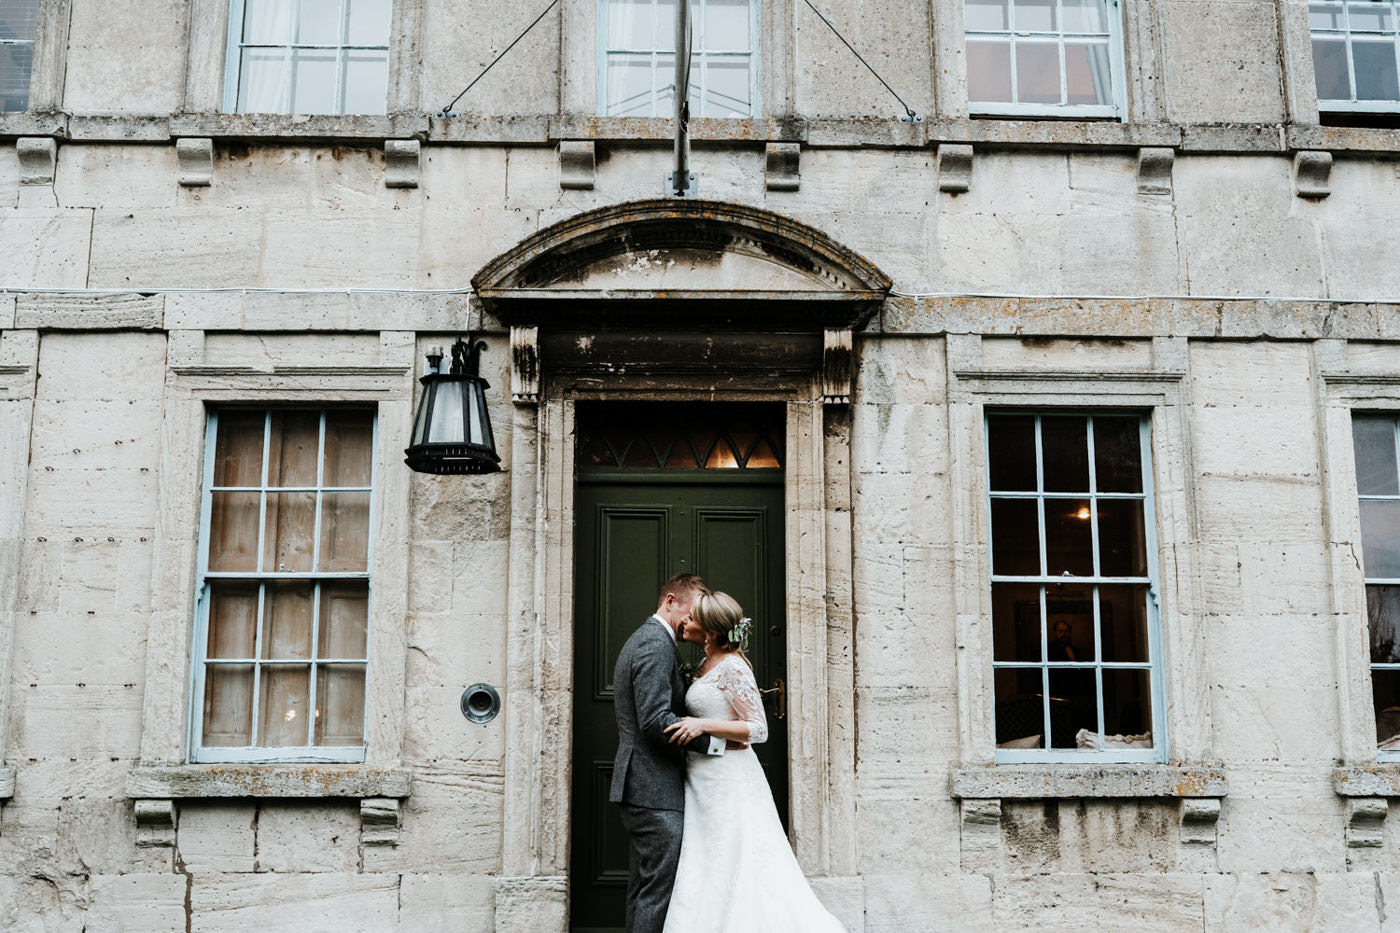 Emily and Rich, Moonraker Hotel, Wiltshire 23